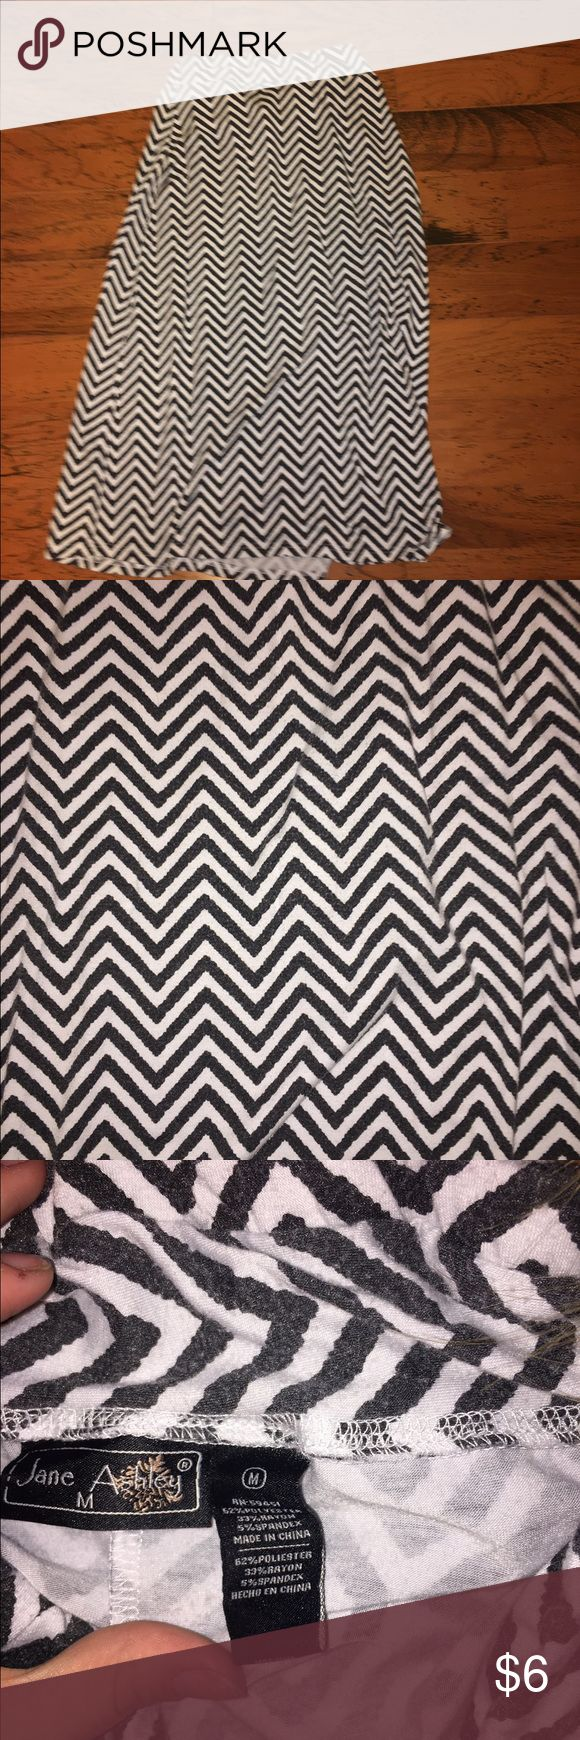 Chevron maxi skirt Perfect condition. I wouldn't SALE it if I didn't need the money. Like an ash gray. Skirts Maxi